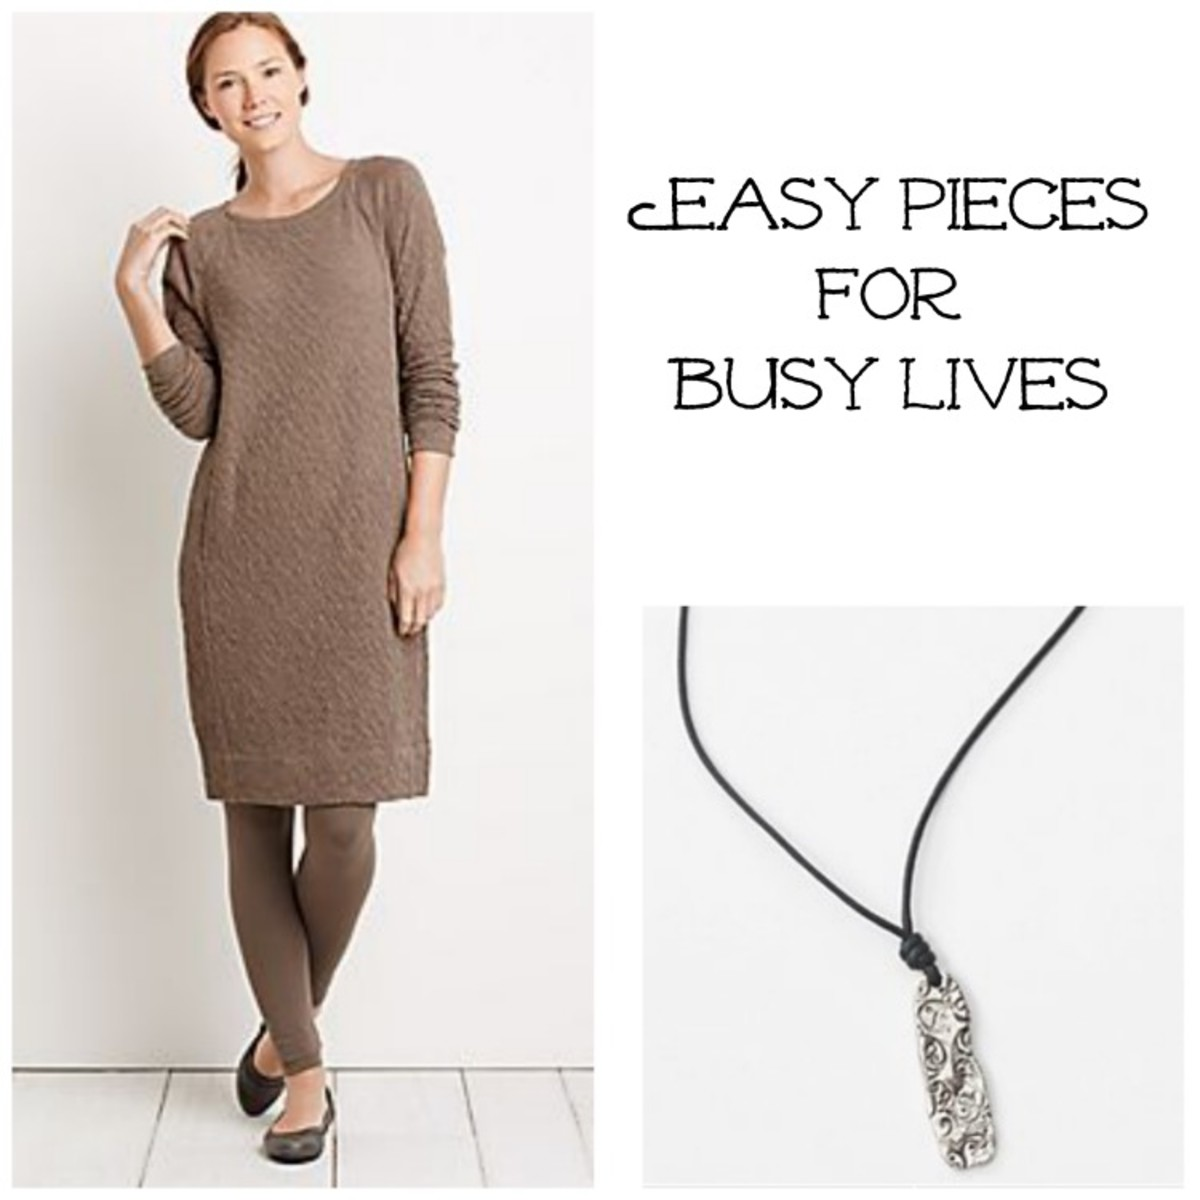 easy pieces for busy lives